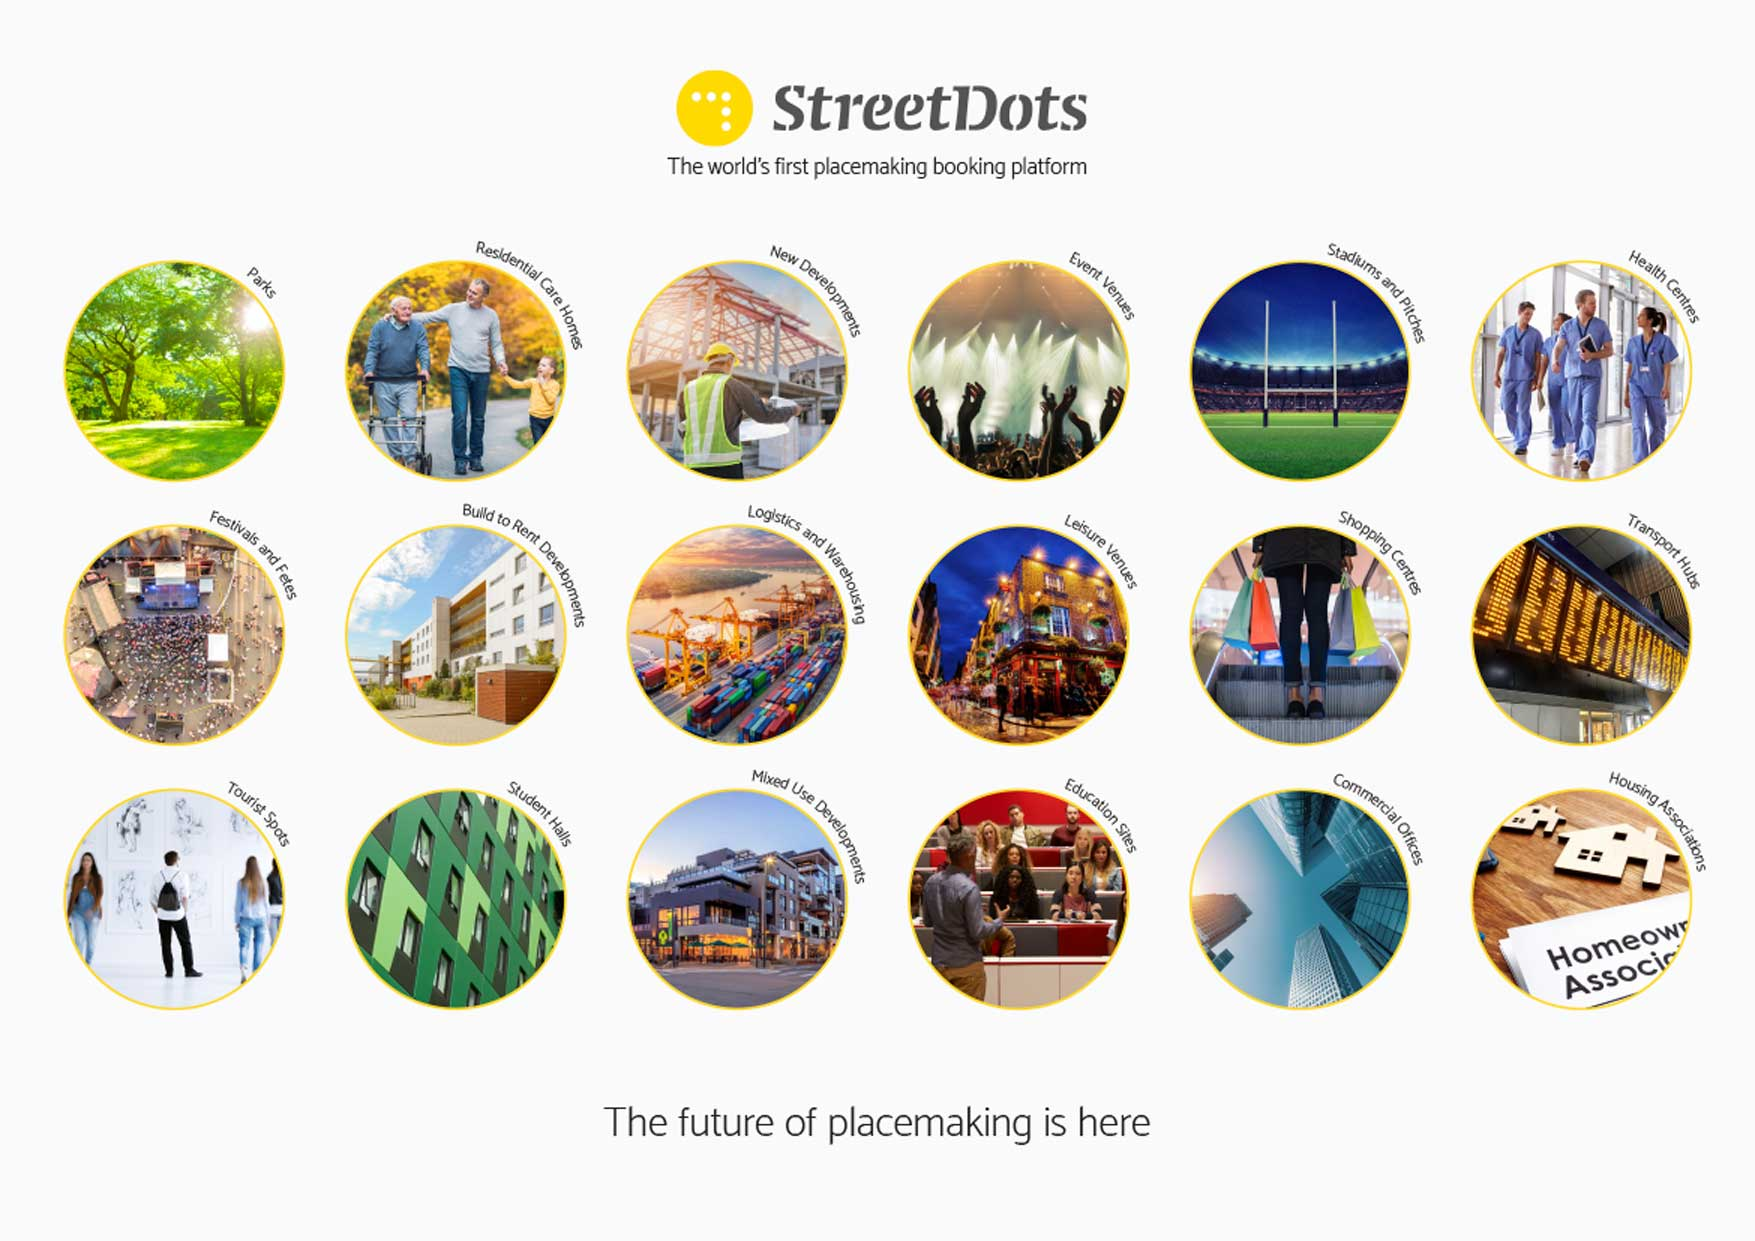 Welcome to StreetDots